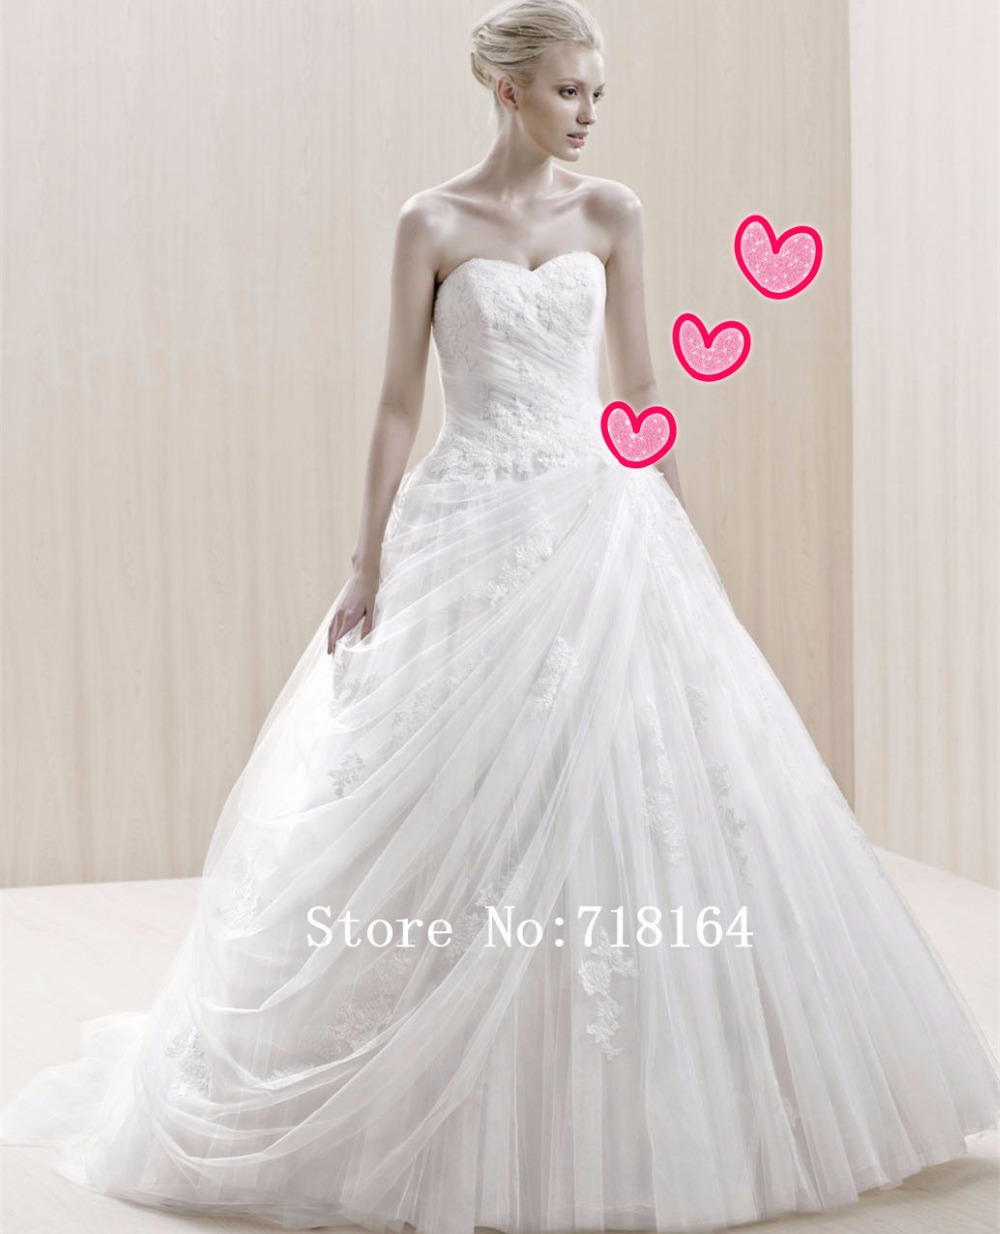 Buy cheap wedding dresses made in china for Wedding dresses boston cheap